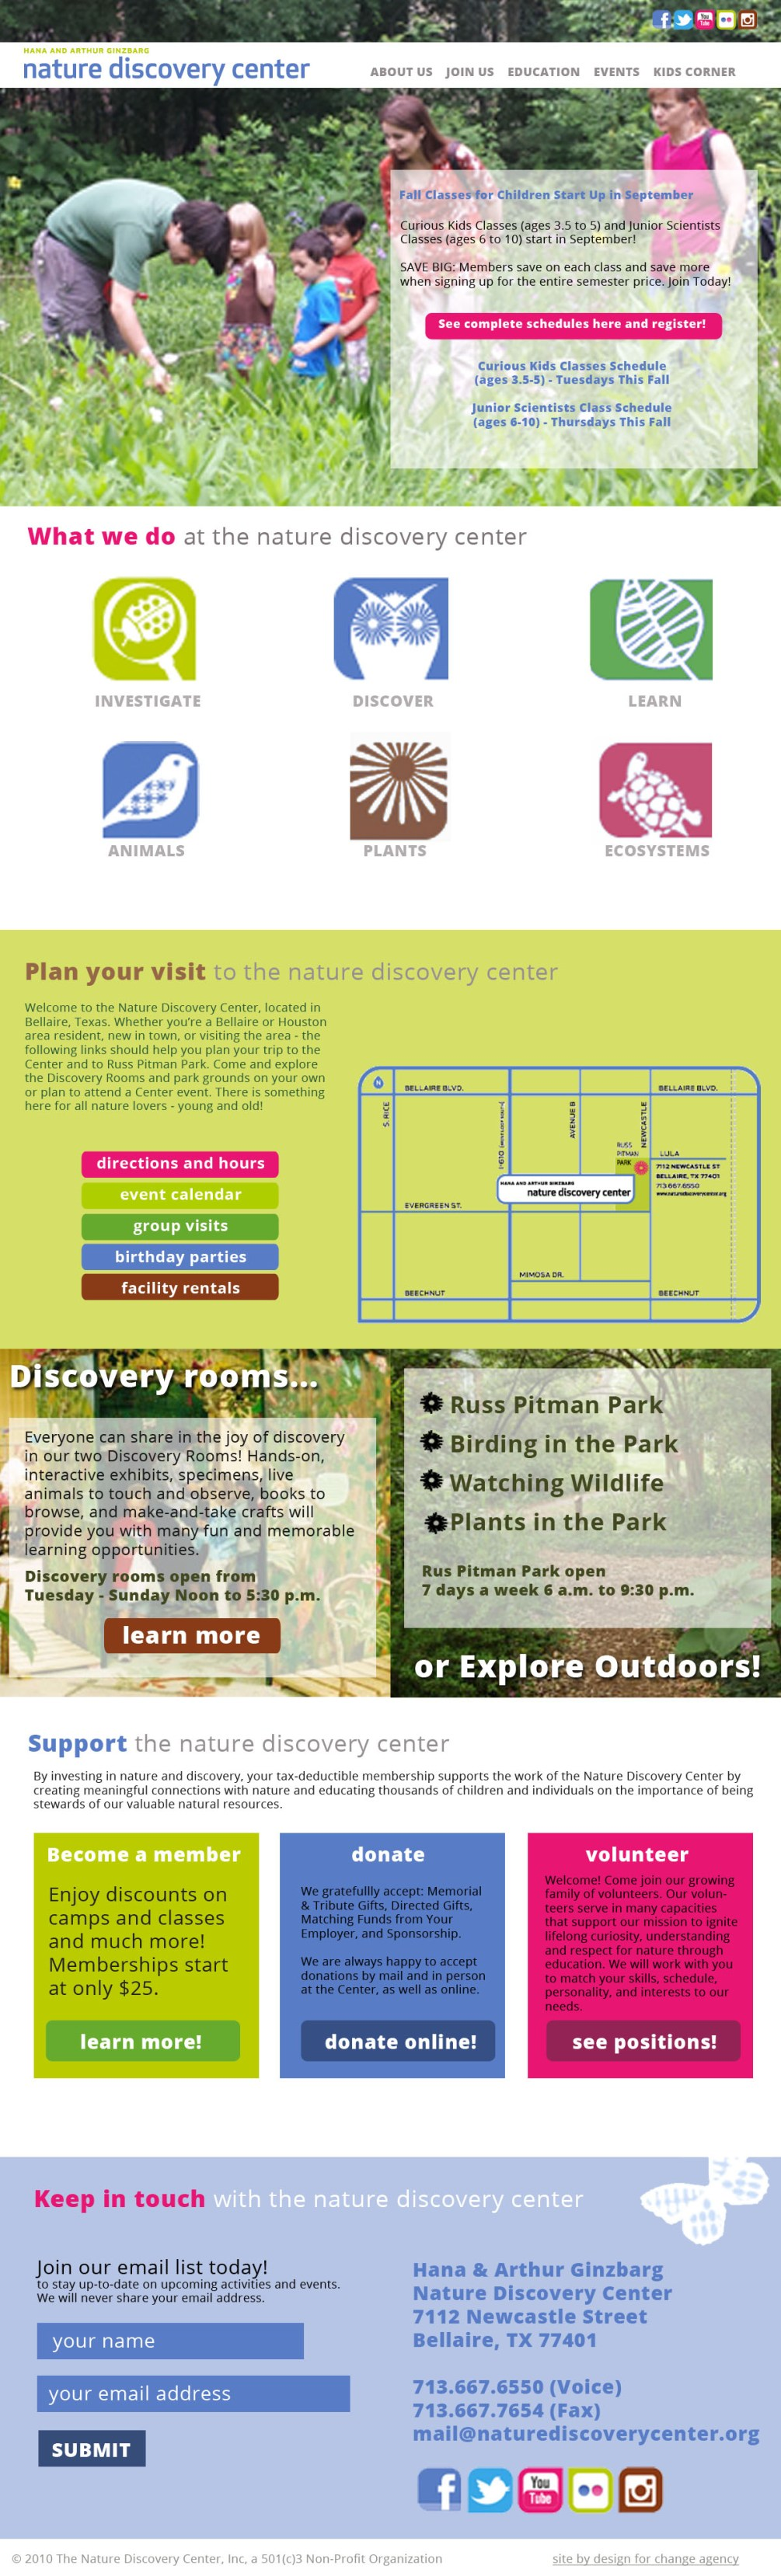 nature discovery center